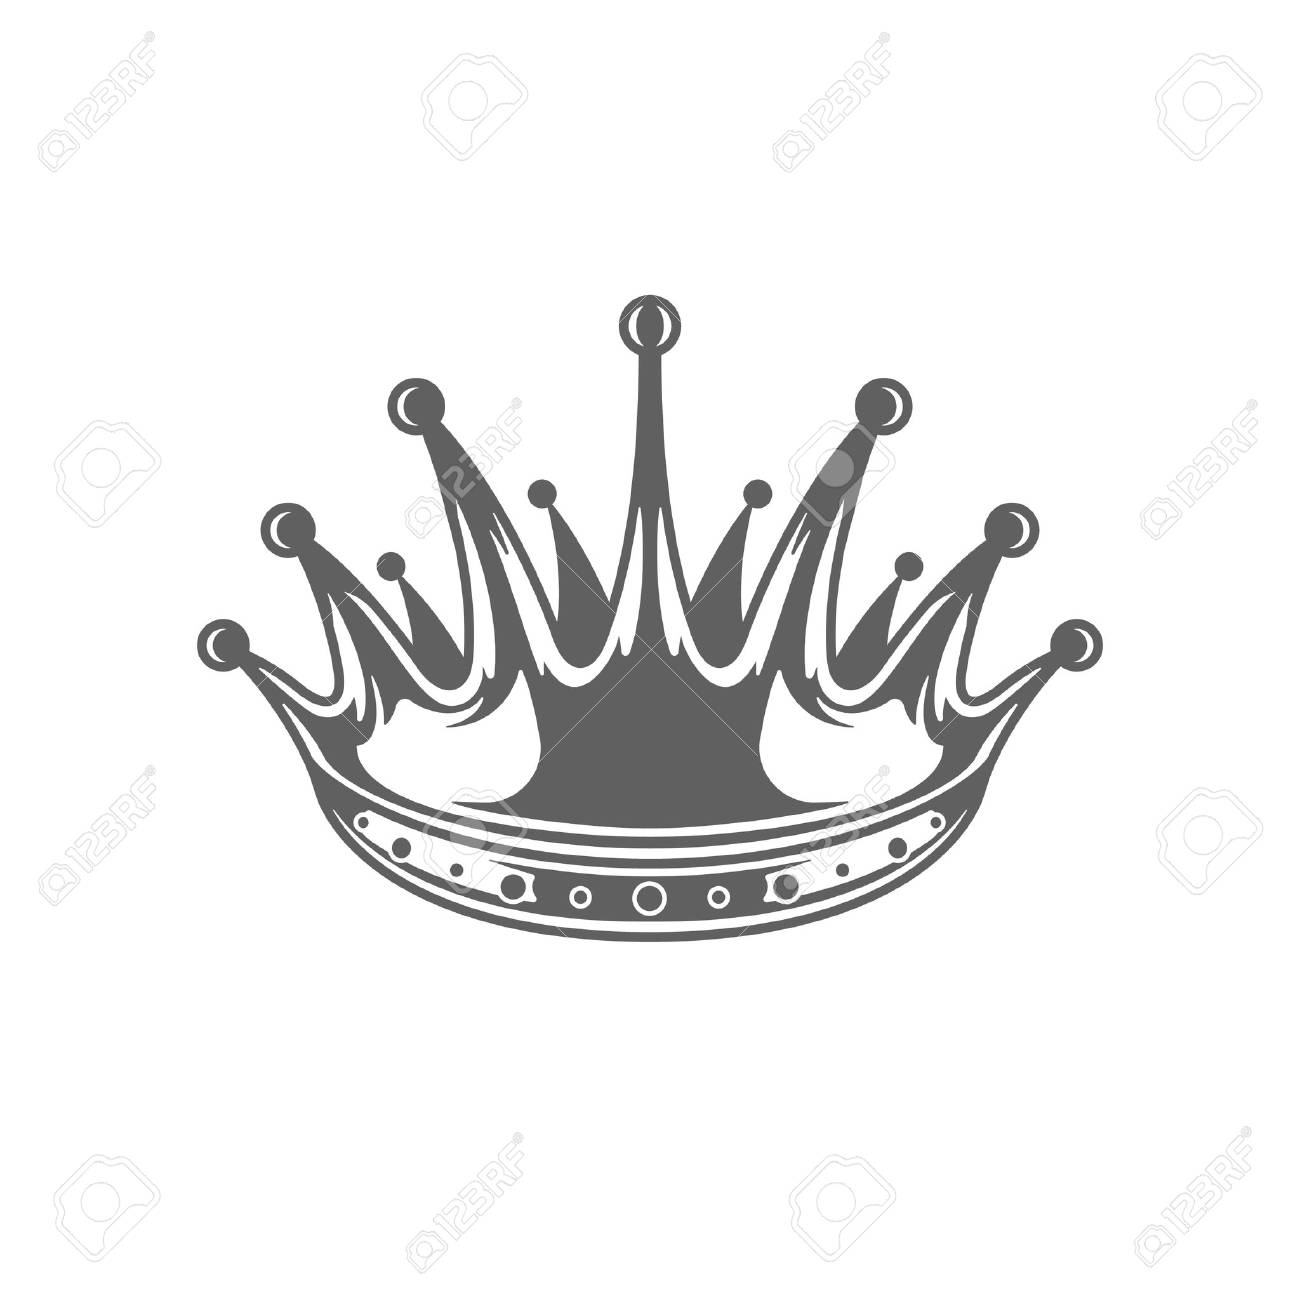 king crown logo vector illustration royal crown silhouette isolated rh 123rf com royalty vector free royalty vector png